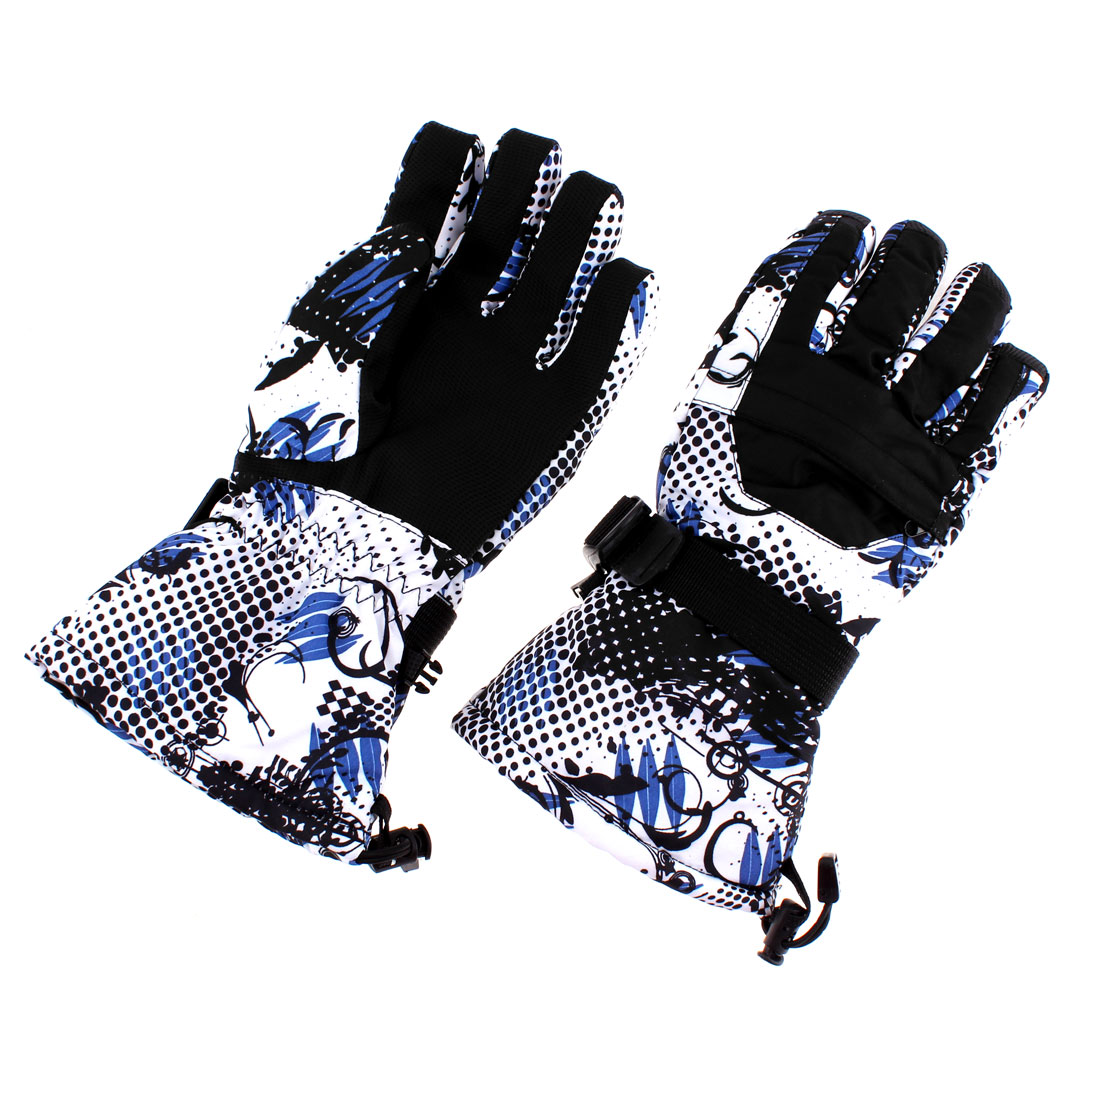 Winter Ski Skiing Snow Snowboarding Gloves Black XL Pair for Men